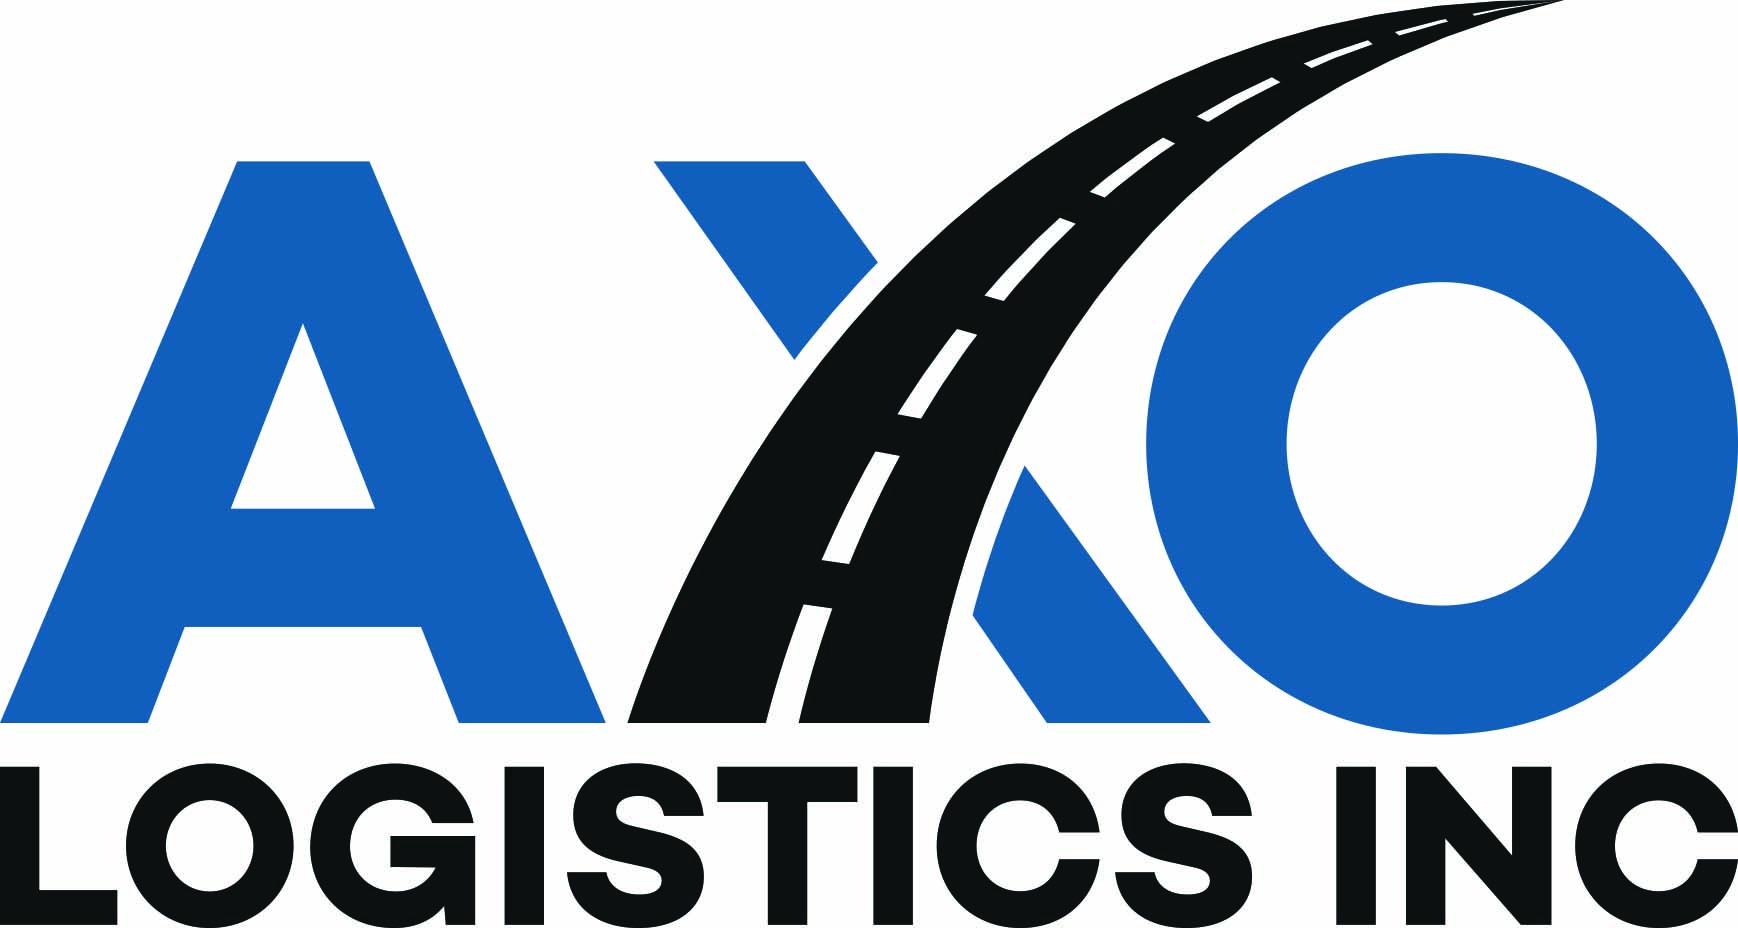 Freight Brokers - AXO Logistics Inc  - Your Partner in